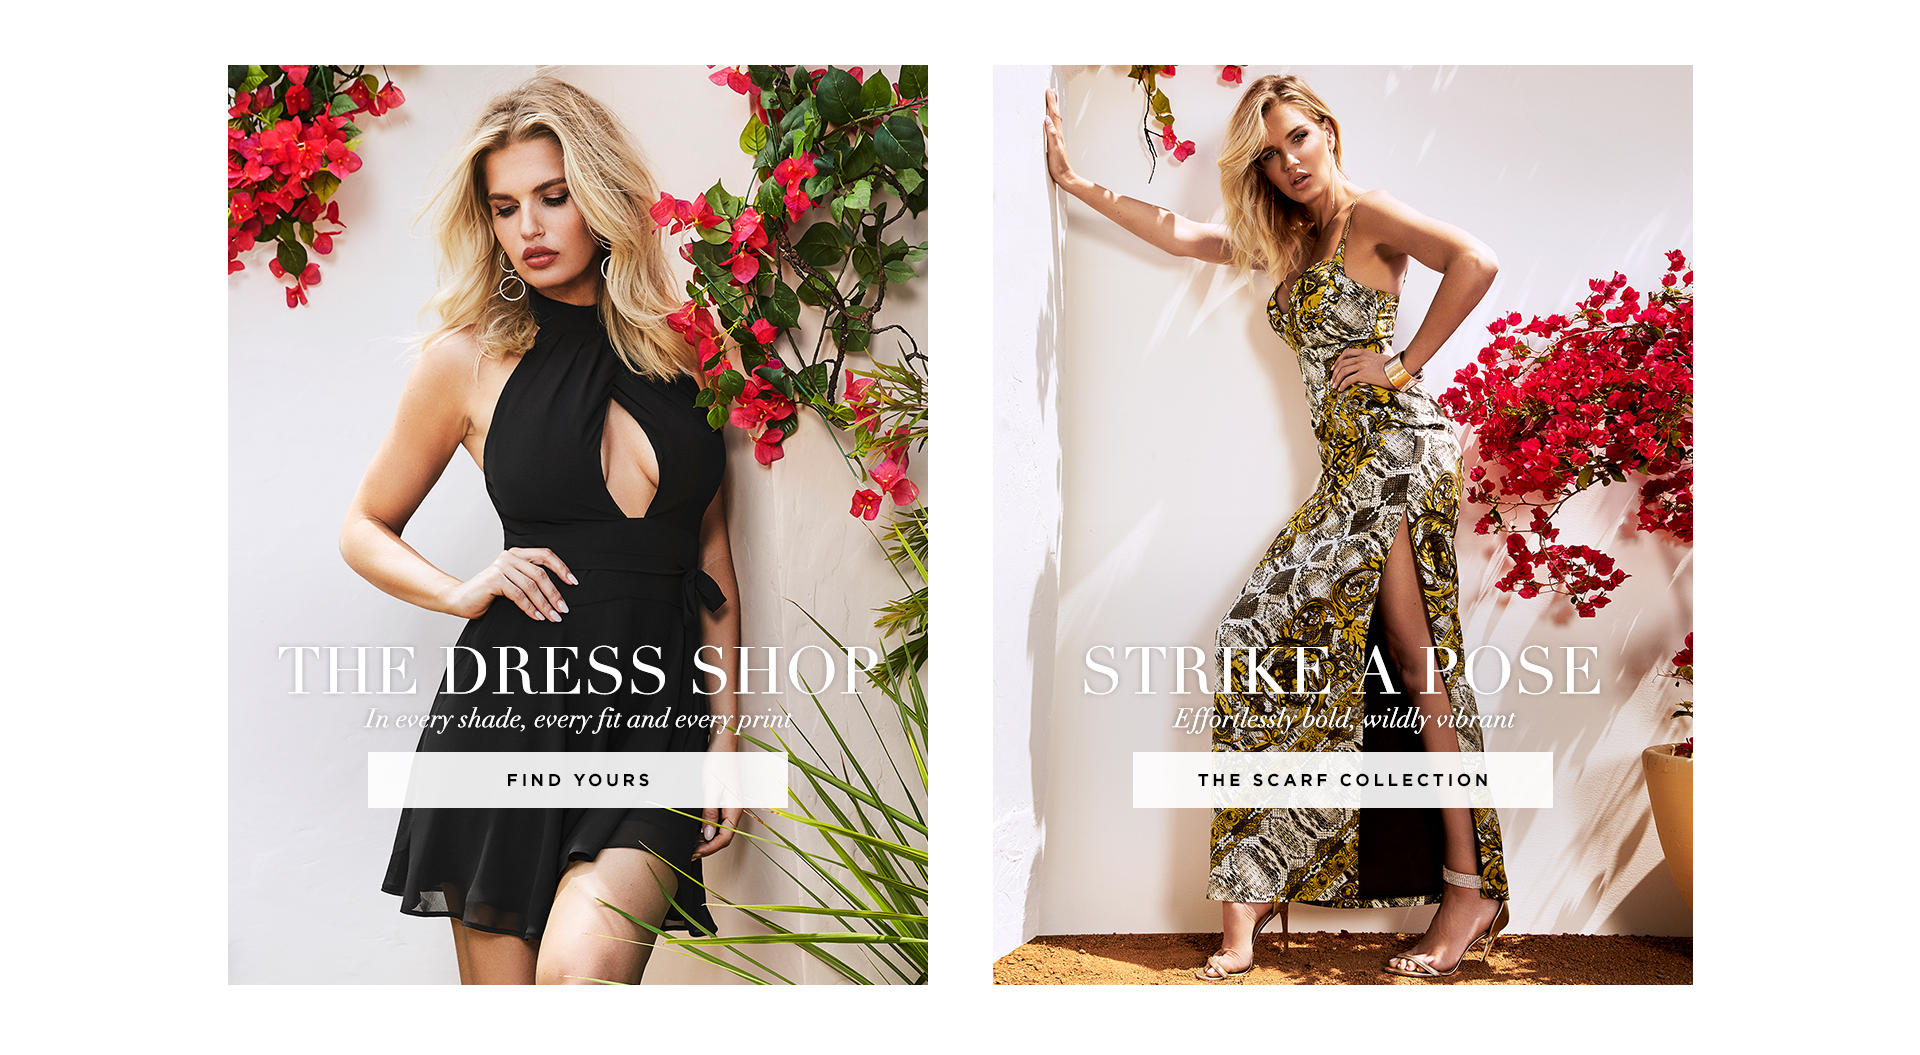 The dress shop + Strike a pose